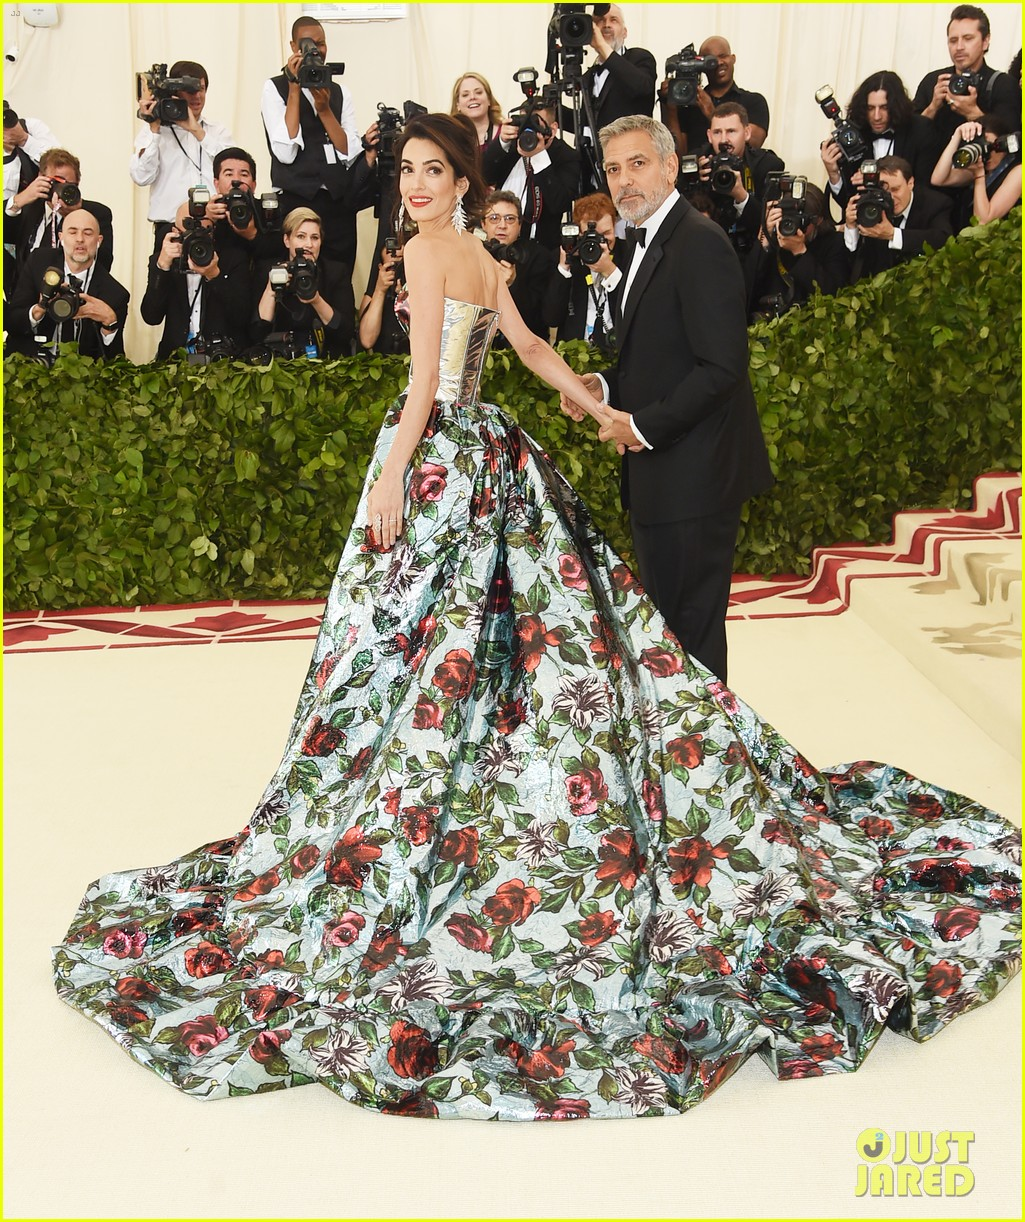 George and Amal at Met Gala Amal-clooney-george-clooney-met-gala-2018-02